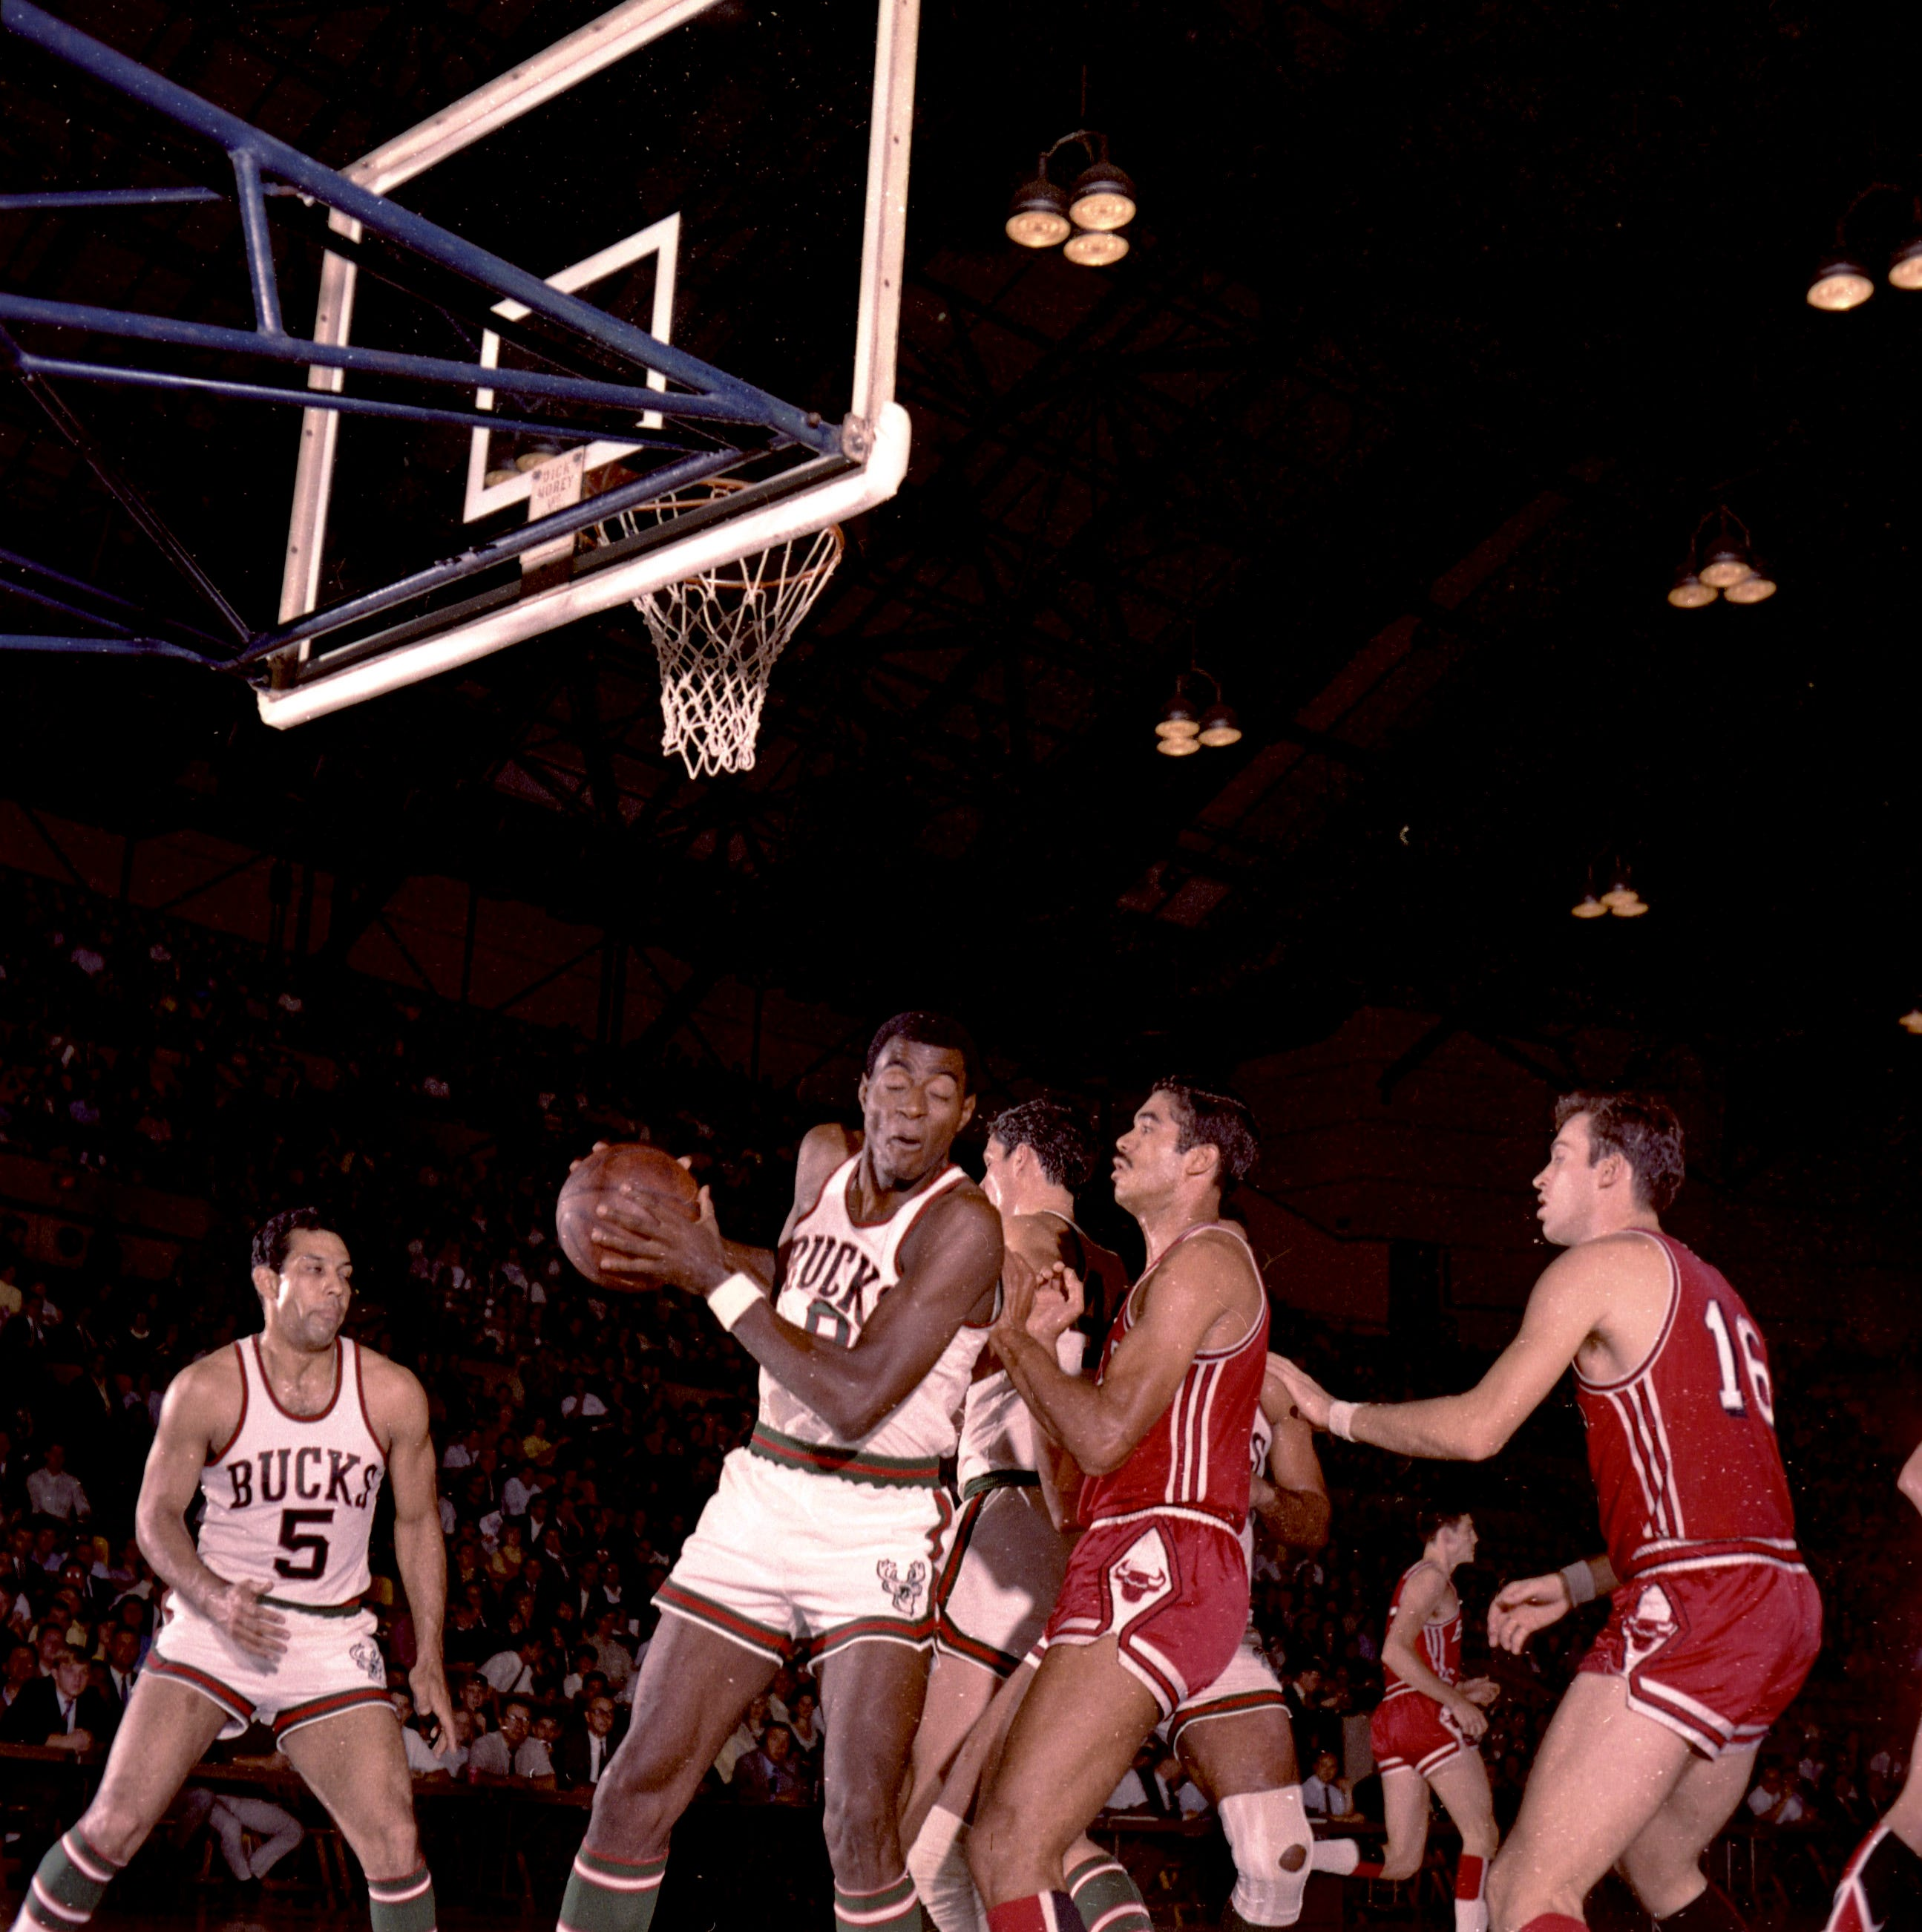 When the Milwaukee Bucks took the court for their first game ever, 50 years ago this week